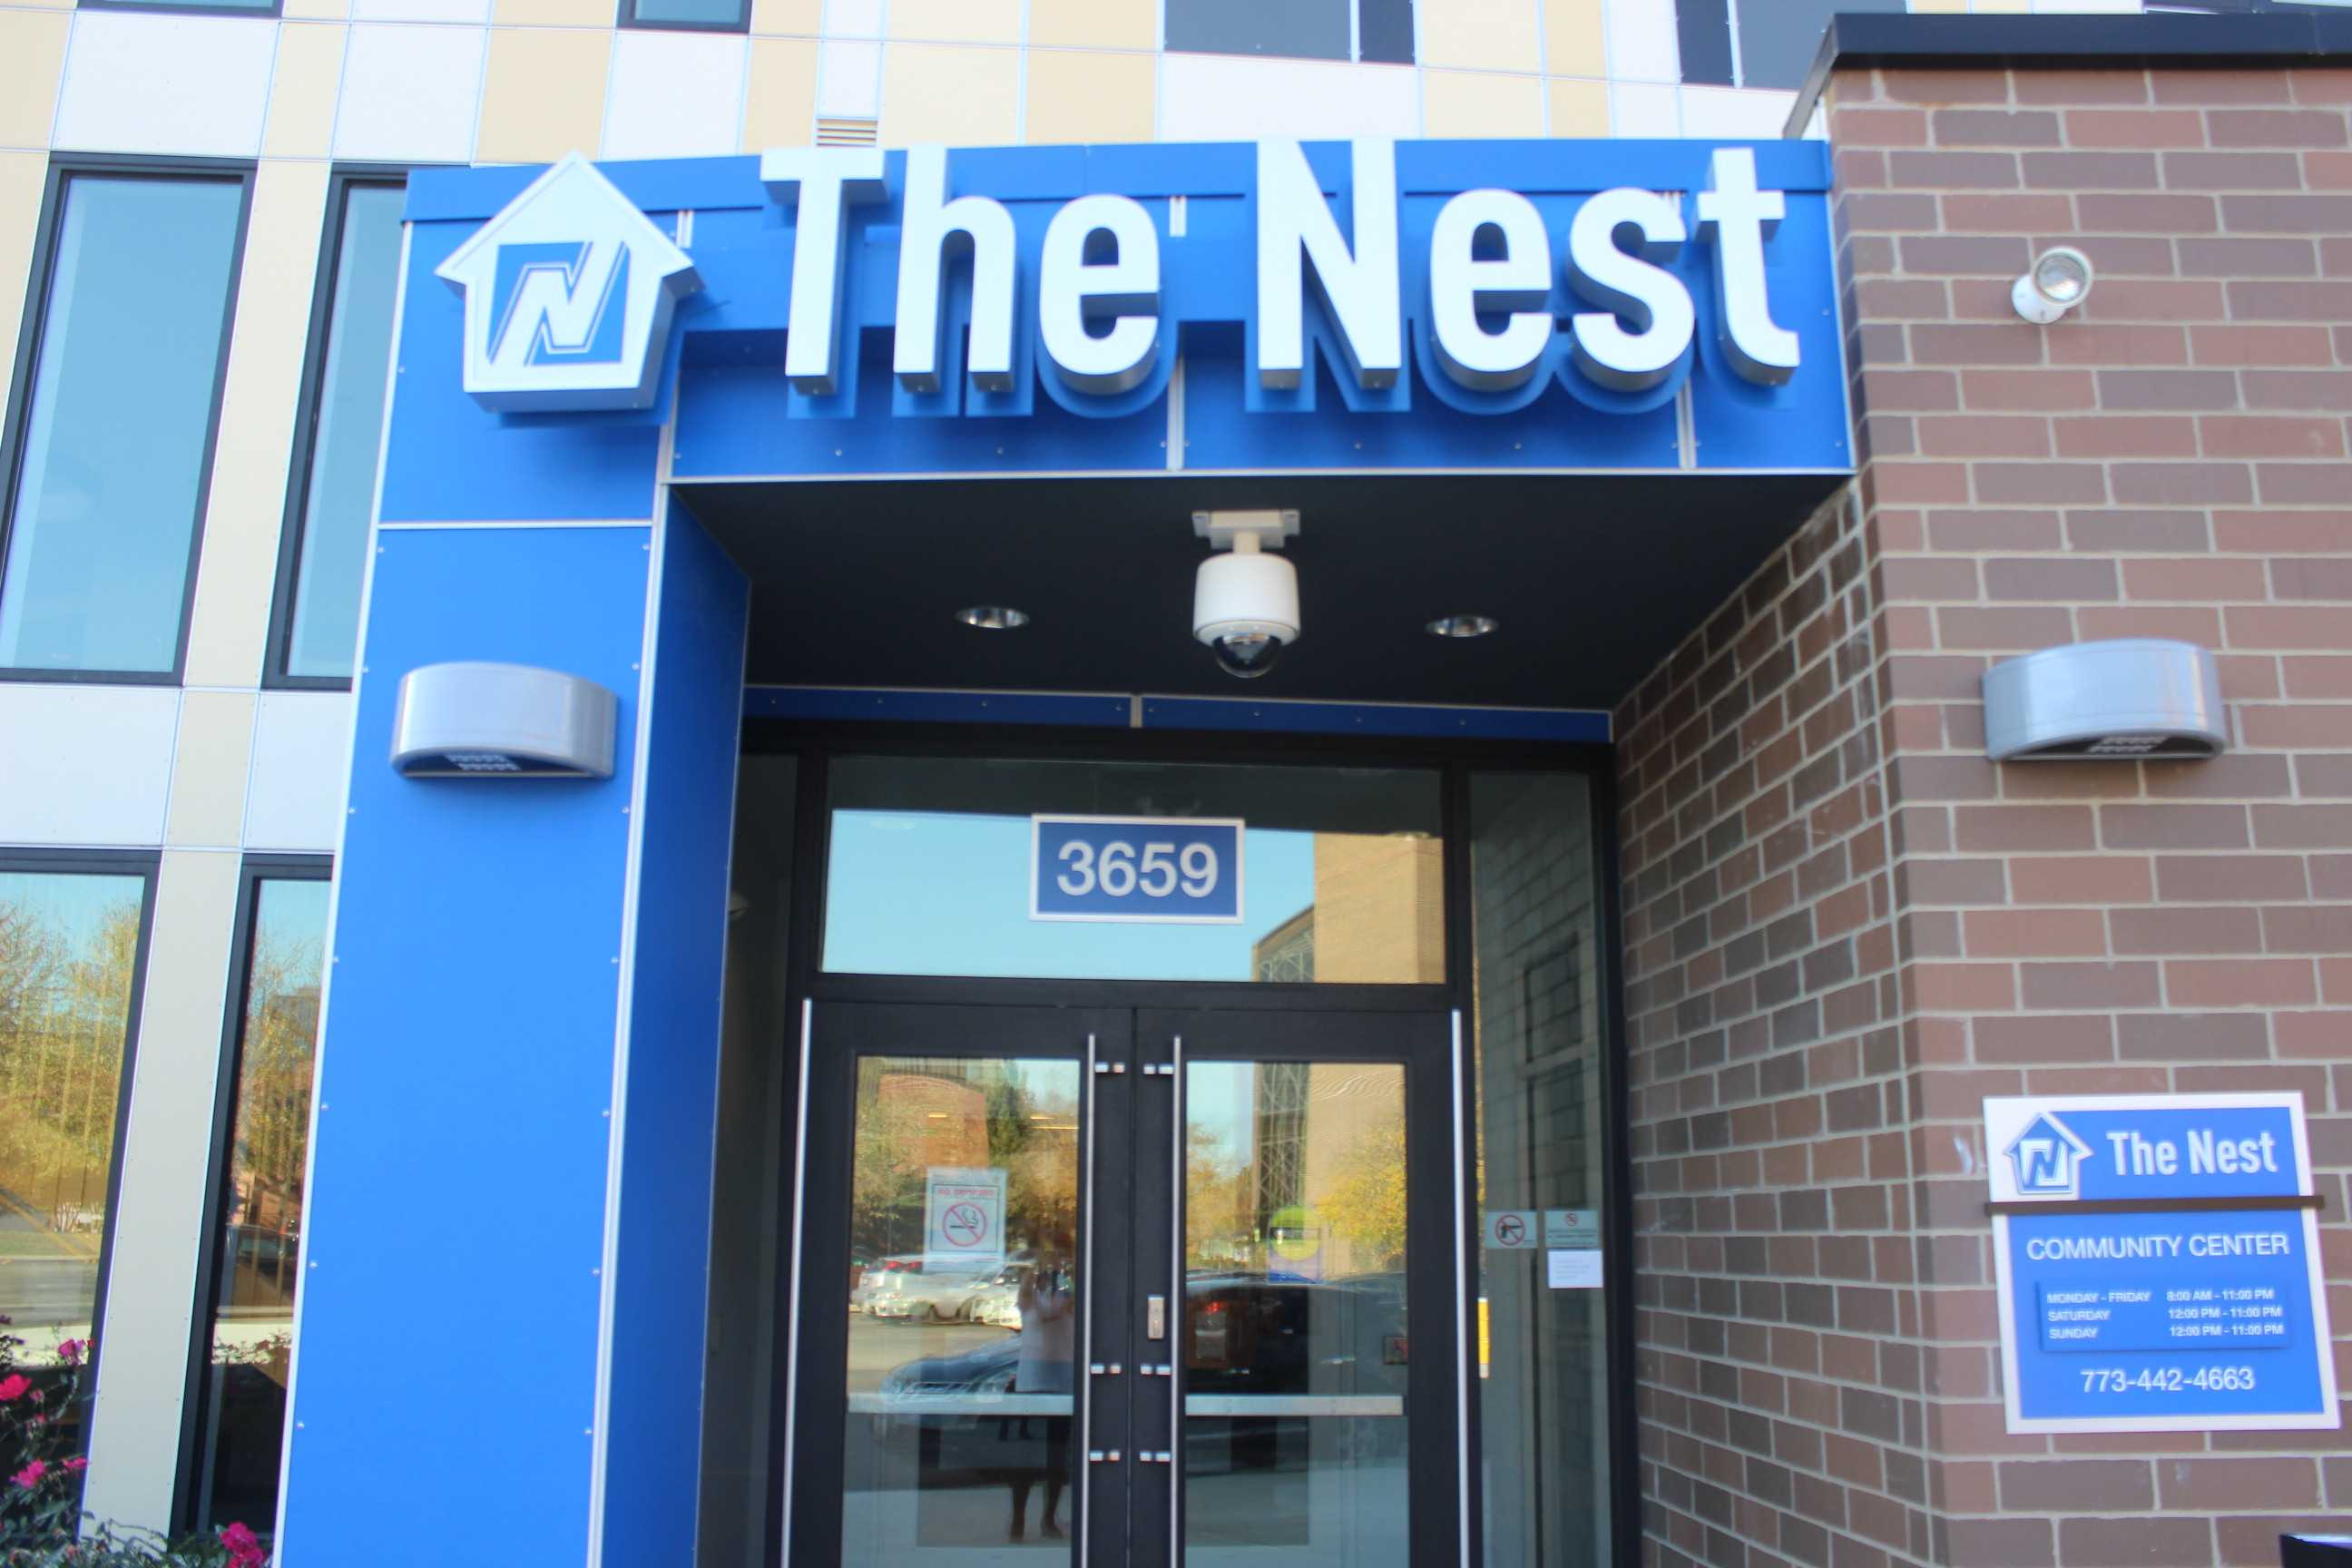 The incidents occurred inside The Nest, NEIU's new student housing.